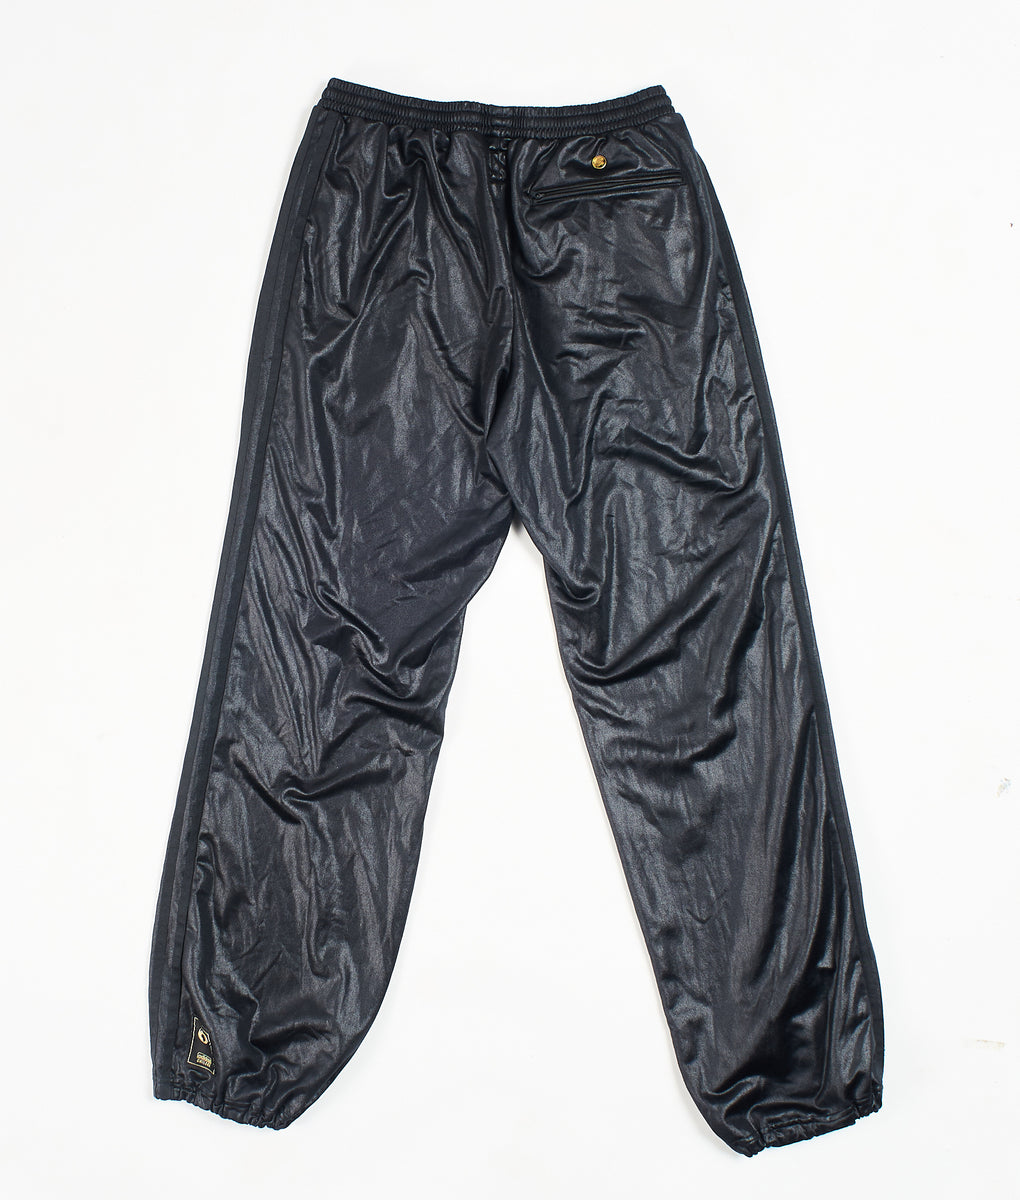 Adidas 'Chile 62' Blk/Gold Track Pants (M)